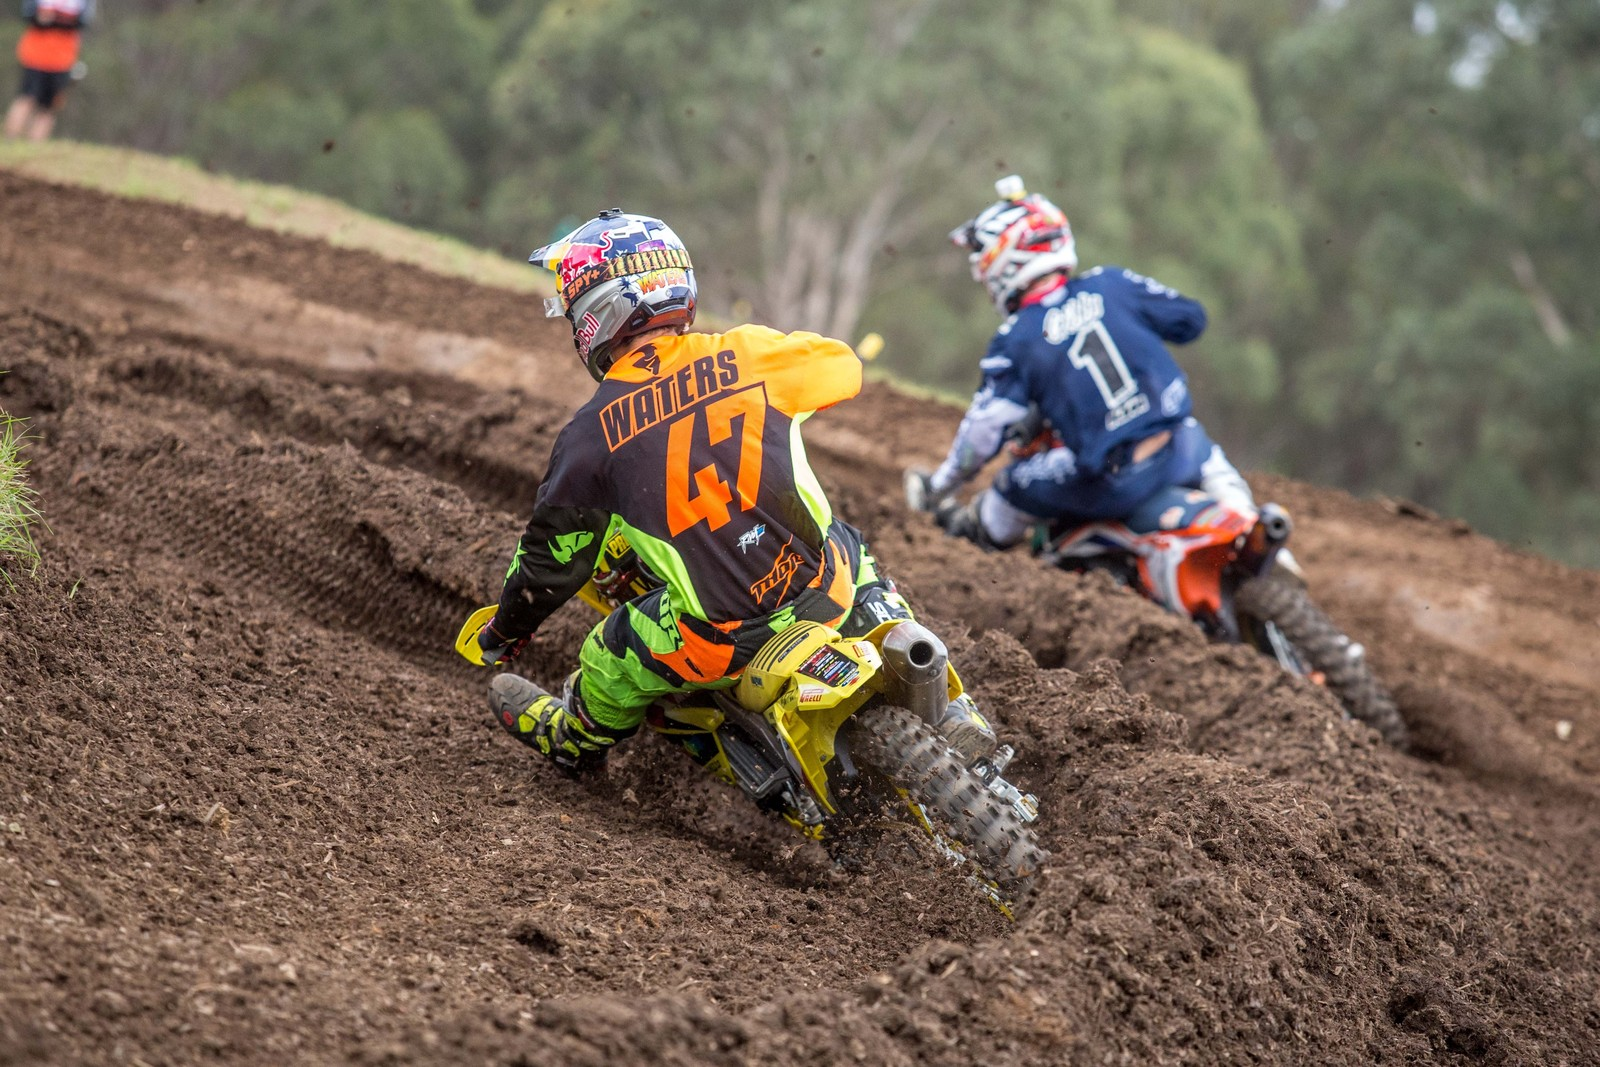 Todd Waters and Kirk Gibbs - Australian Motul Motocross Nationals Round 2, Appin - Motocross Pictures - Vital MX